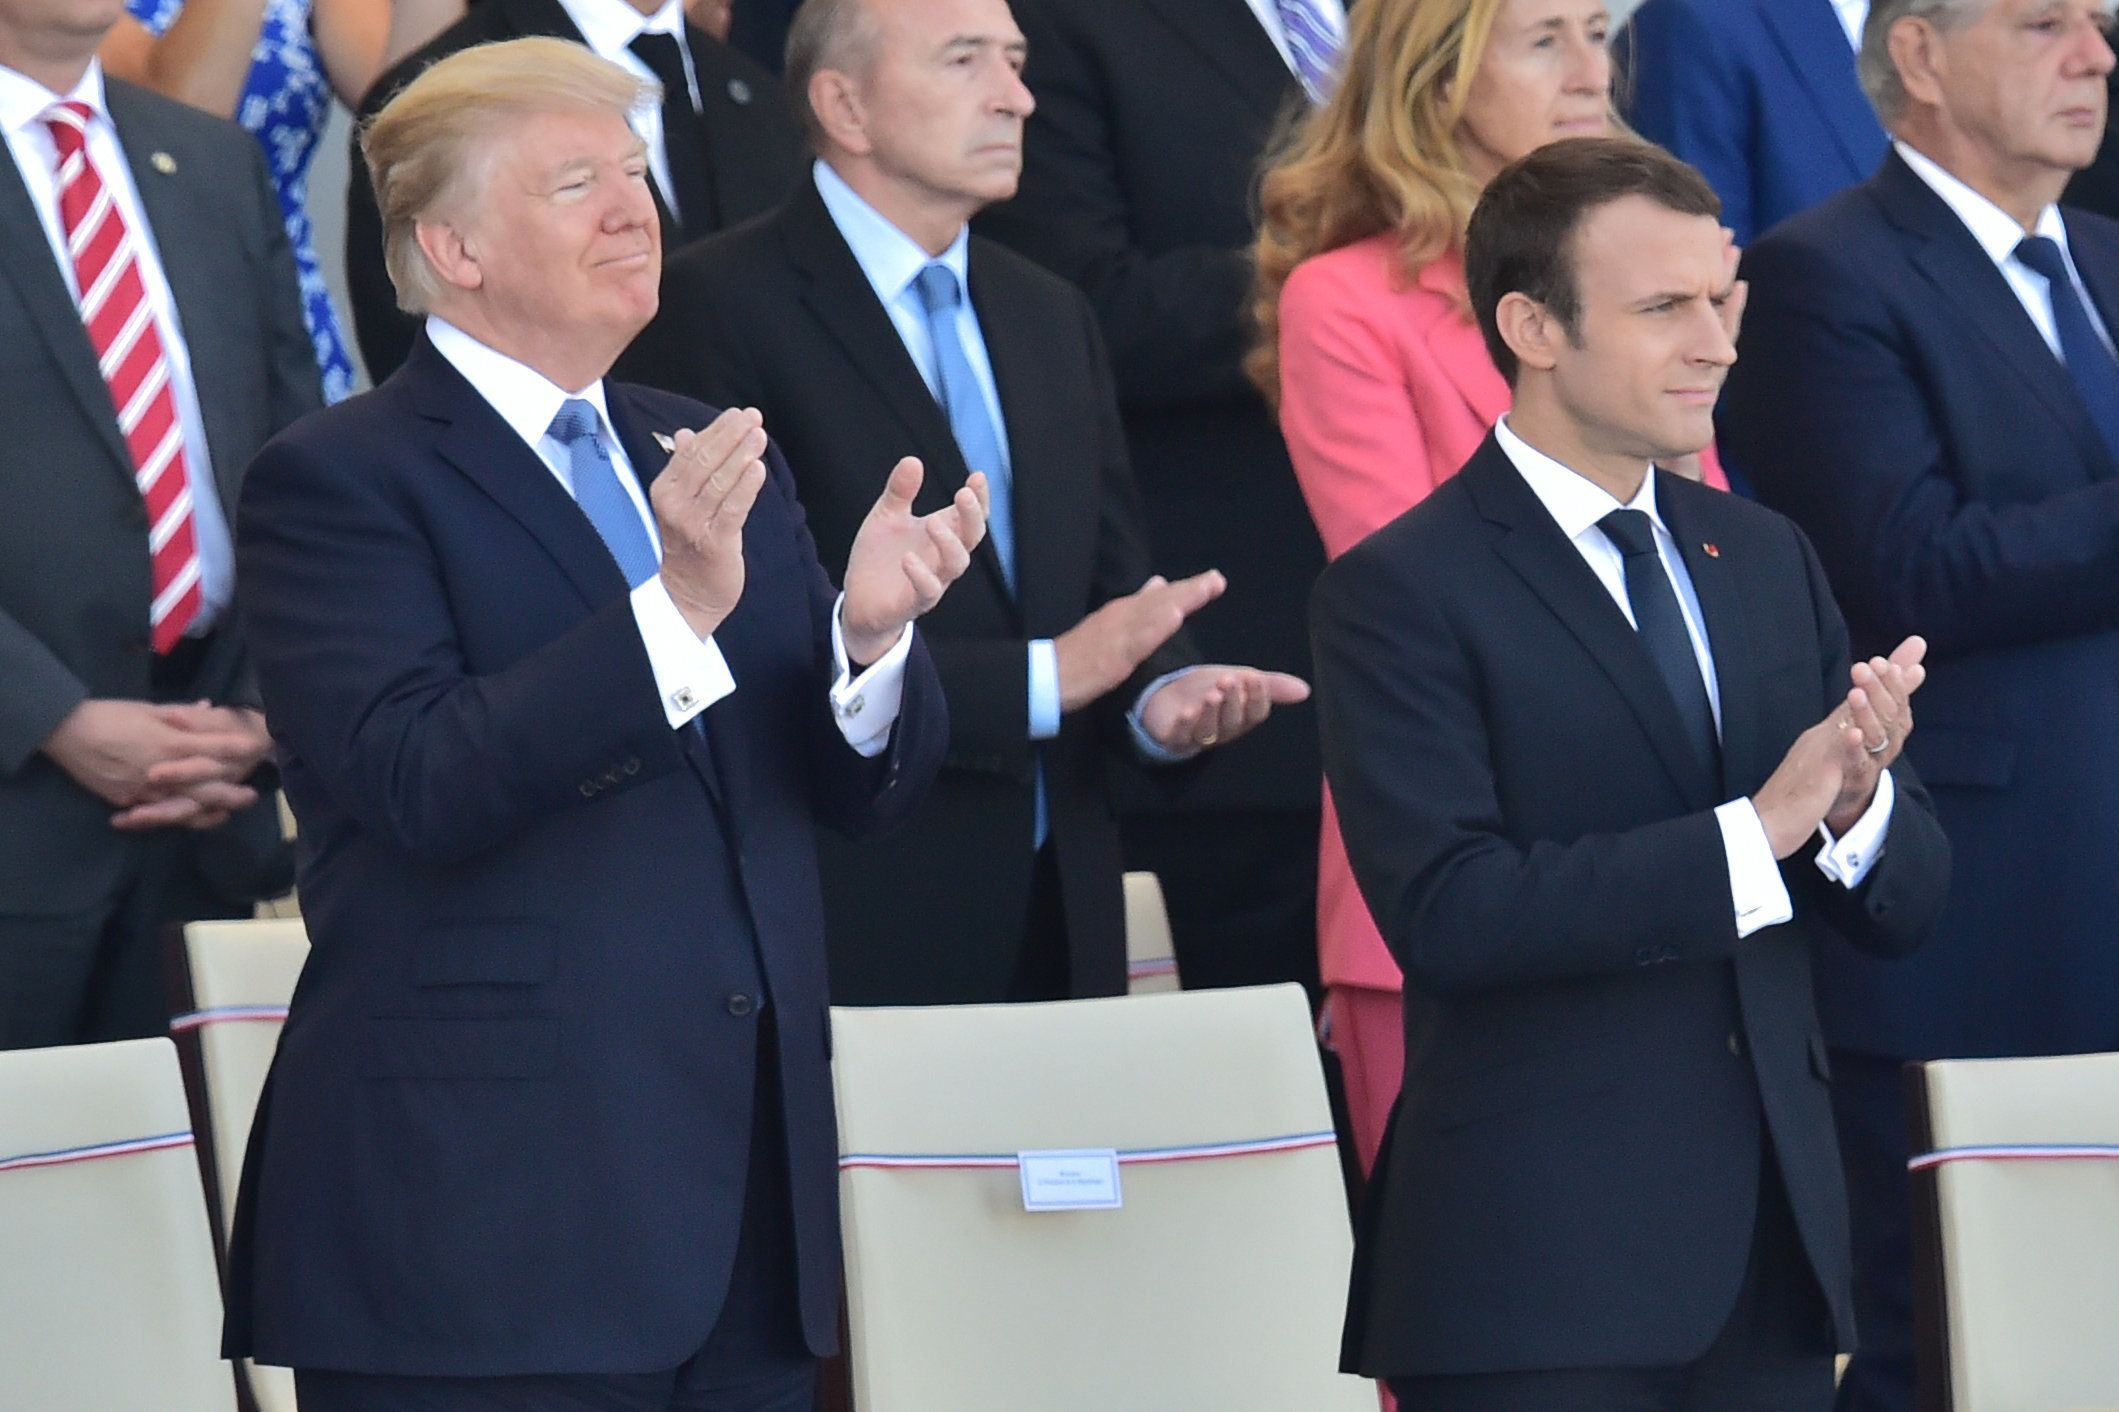 US President Donald Trump (L) and his French counterpart Emmanuel Macron applaud as they watch the annual Bastille Day military parade on the Champs-Elysees avenue in Paris on July 14, 2017. The parade on Paris's Champs-Elysees will commemorate the centenary of the US entering WWI and will feature horses, helicopters, planes and troops. / AFP PHOTO / CHRISTOPHE ARCHAMBAULT        (Photo credit should read CHRISTOPHE ARCHAMBAULT/AFP/Getty Images)